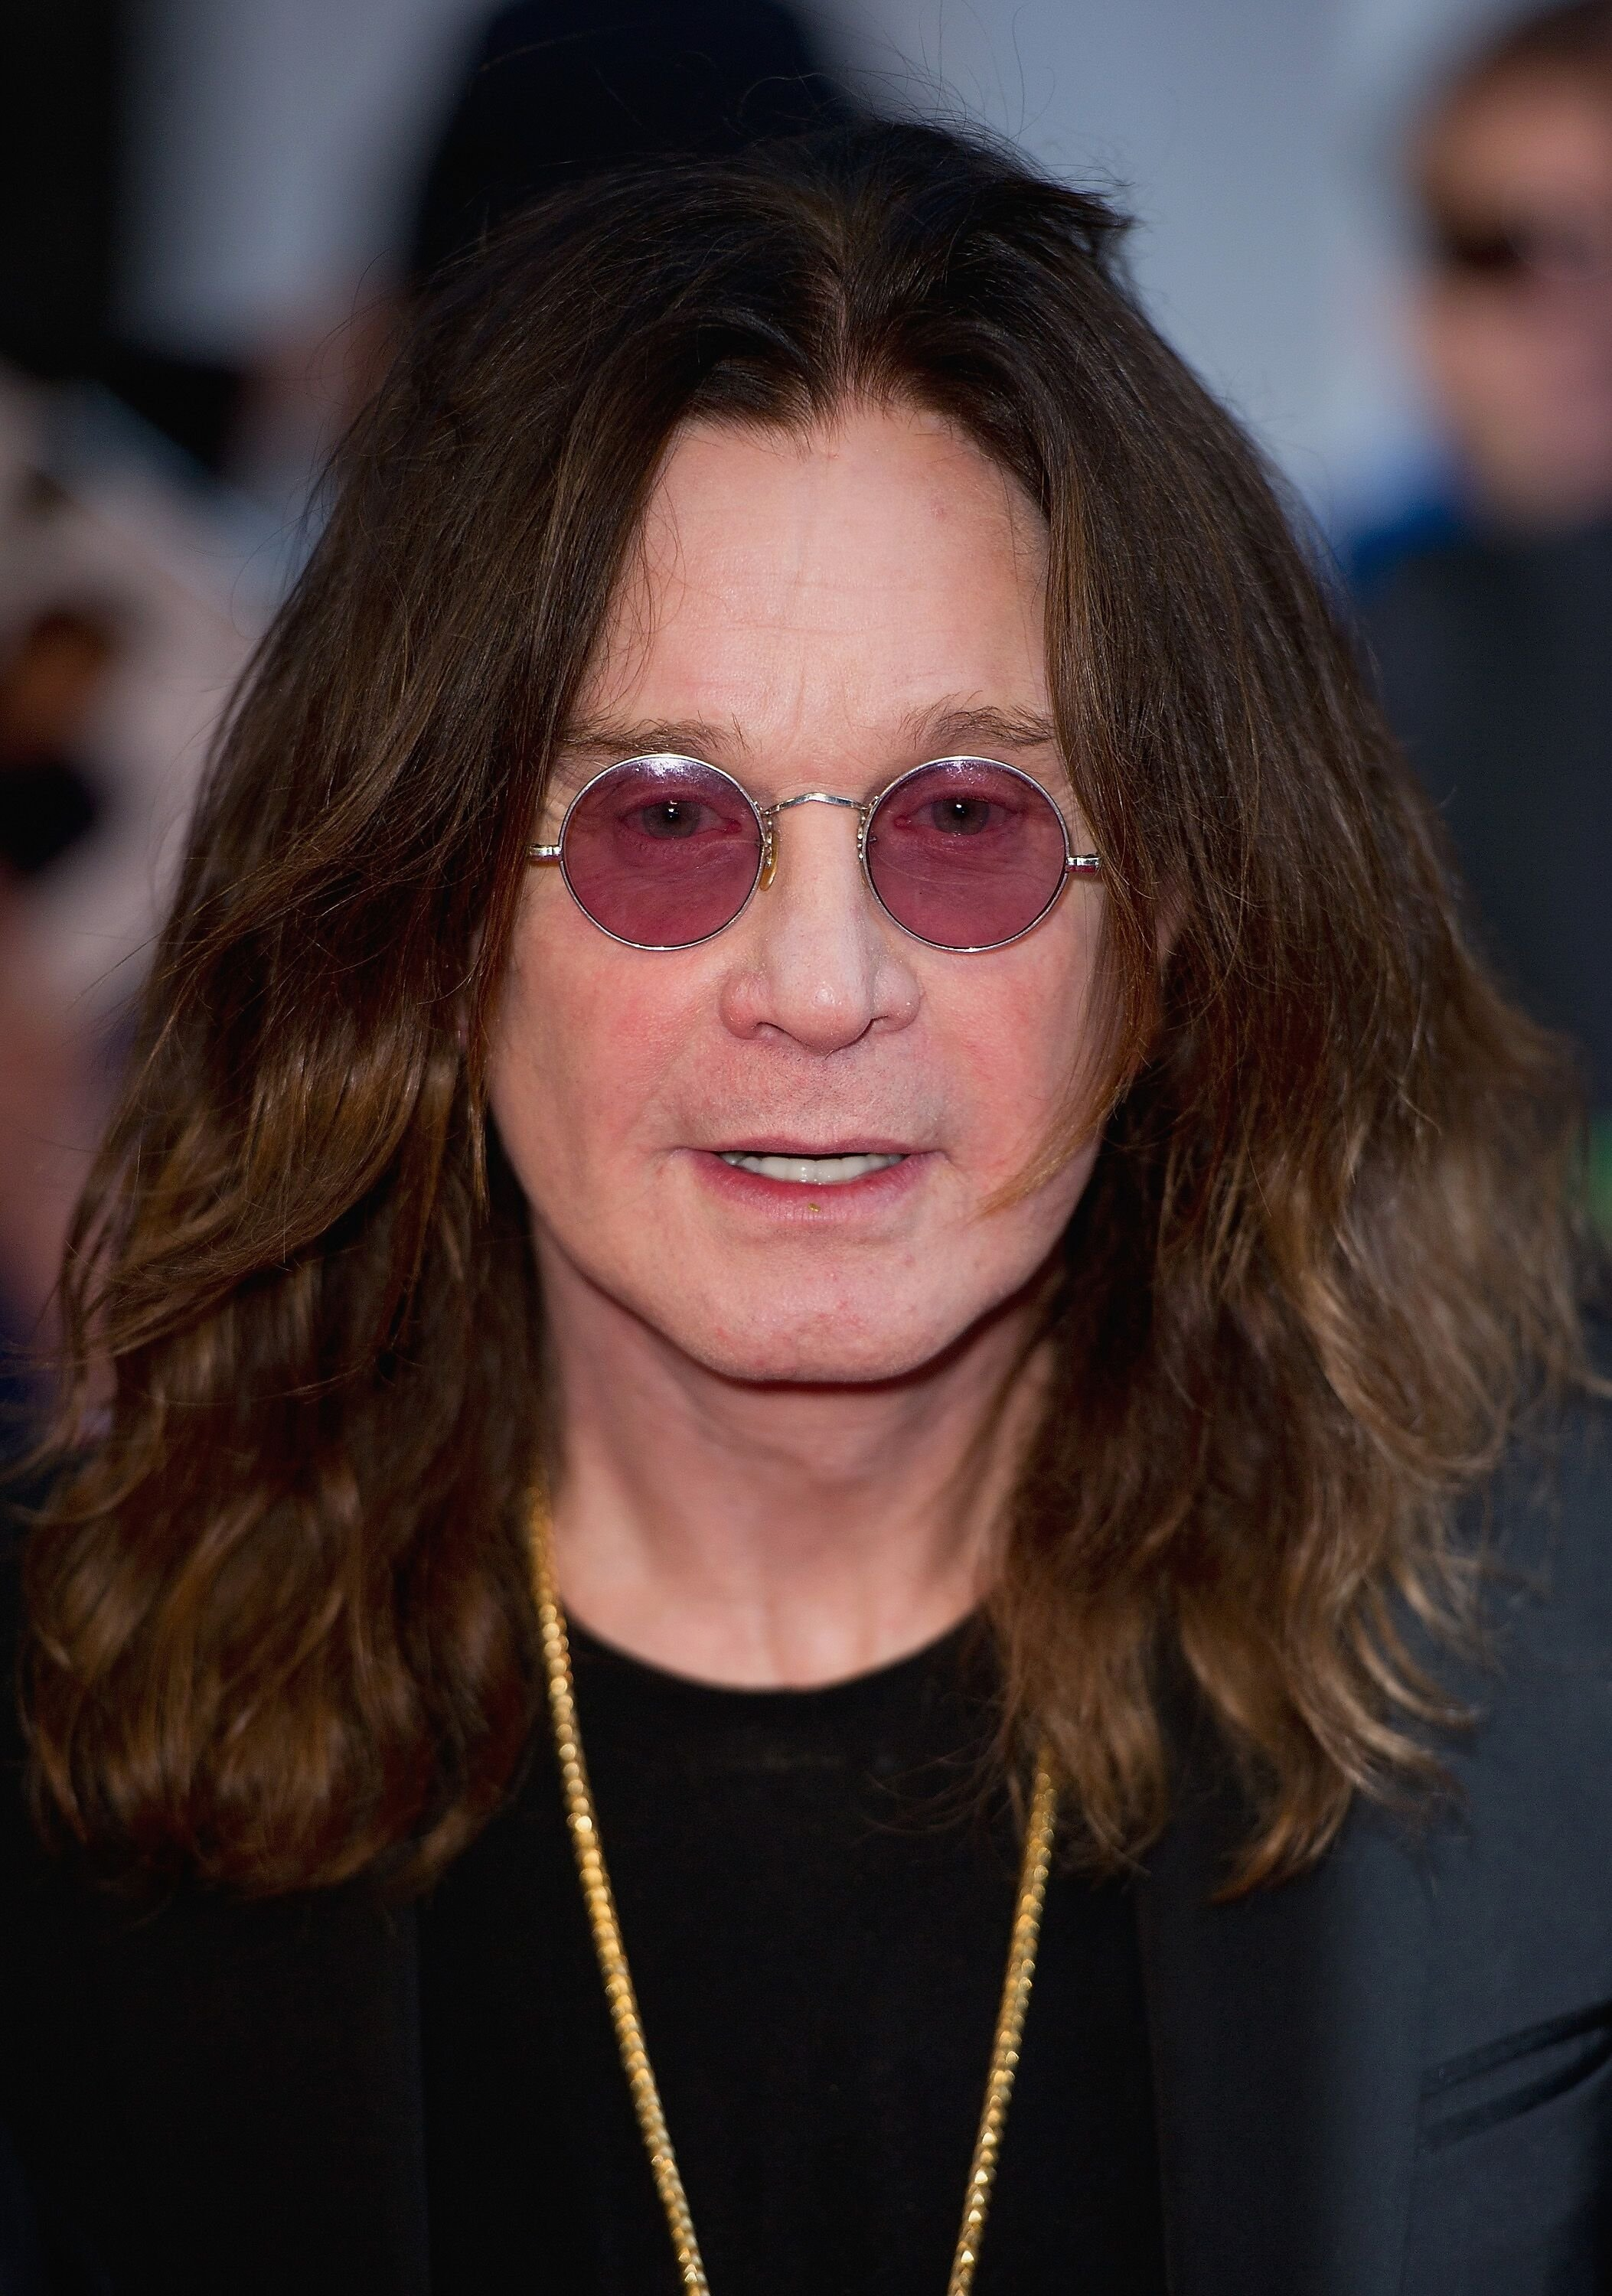 Ozzy Osbourne attends the Pride of Britain awards. | Source: Getty Images